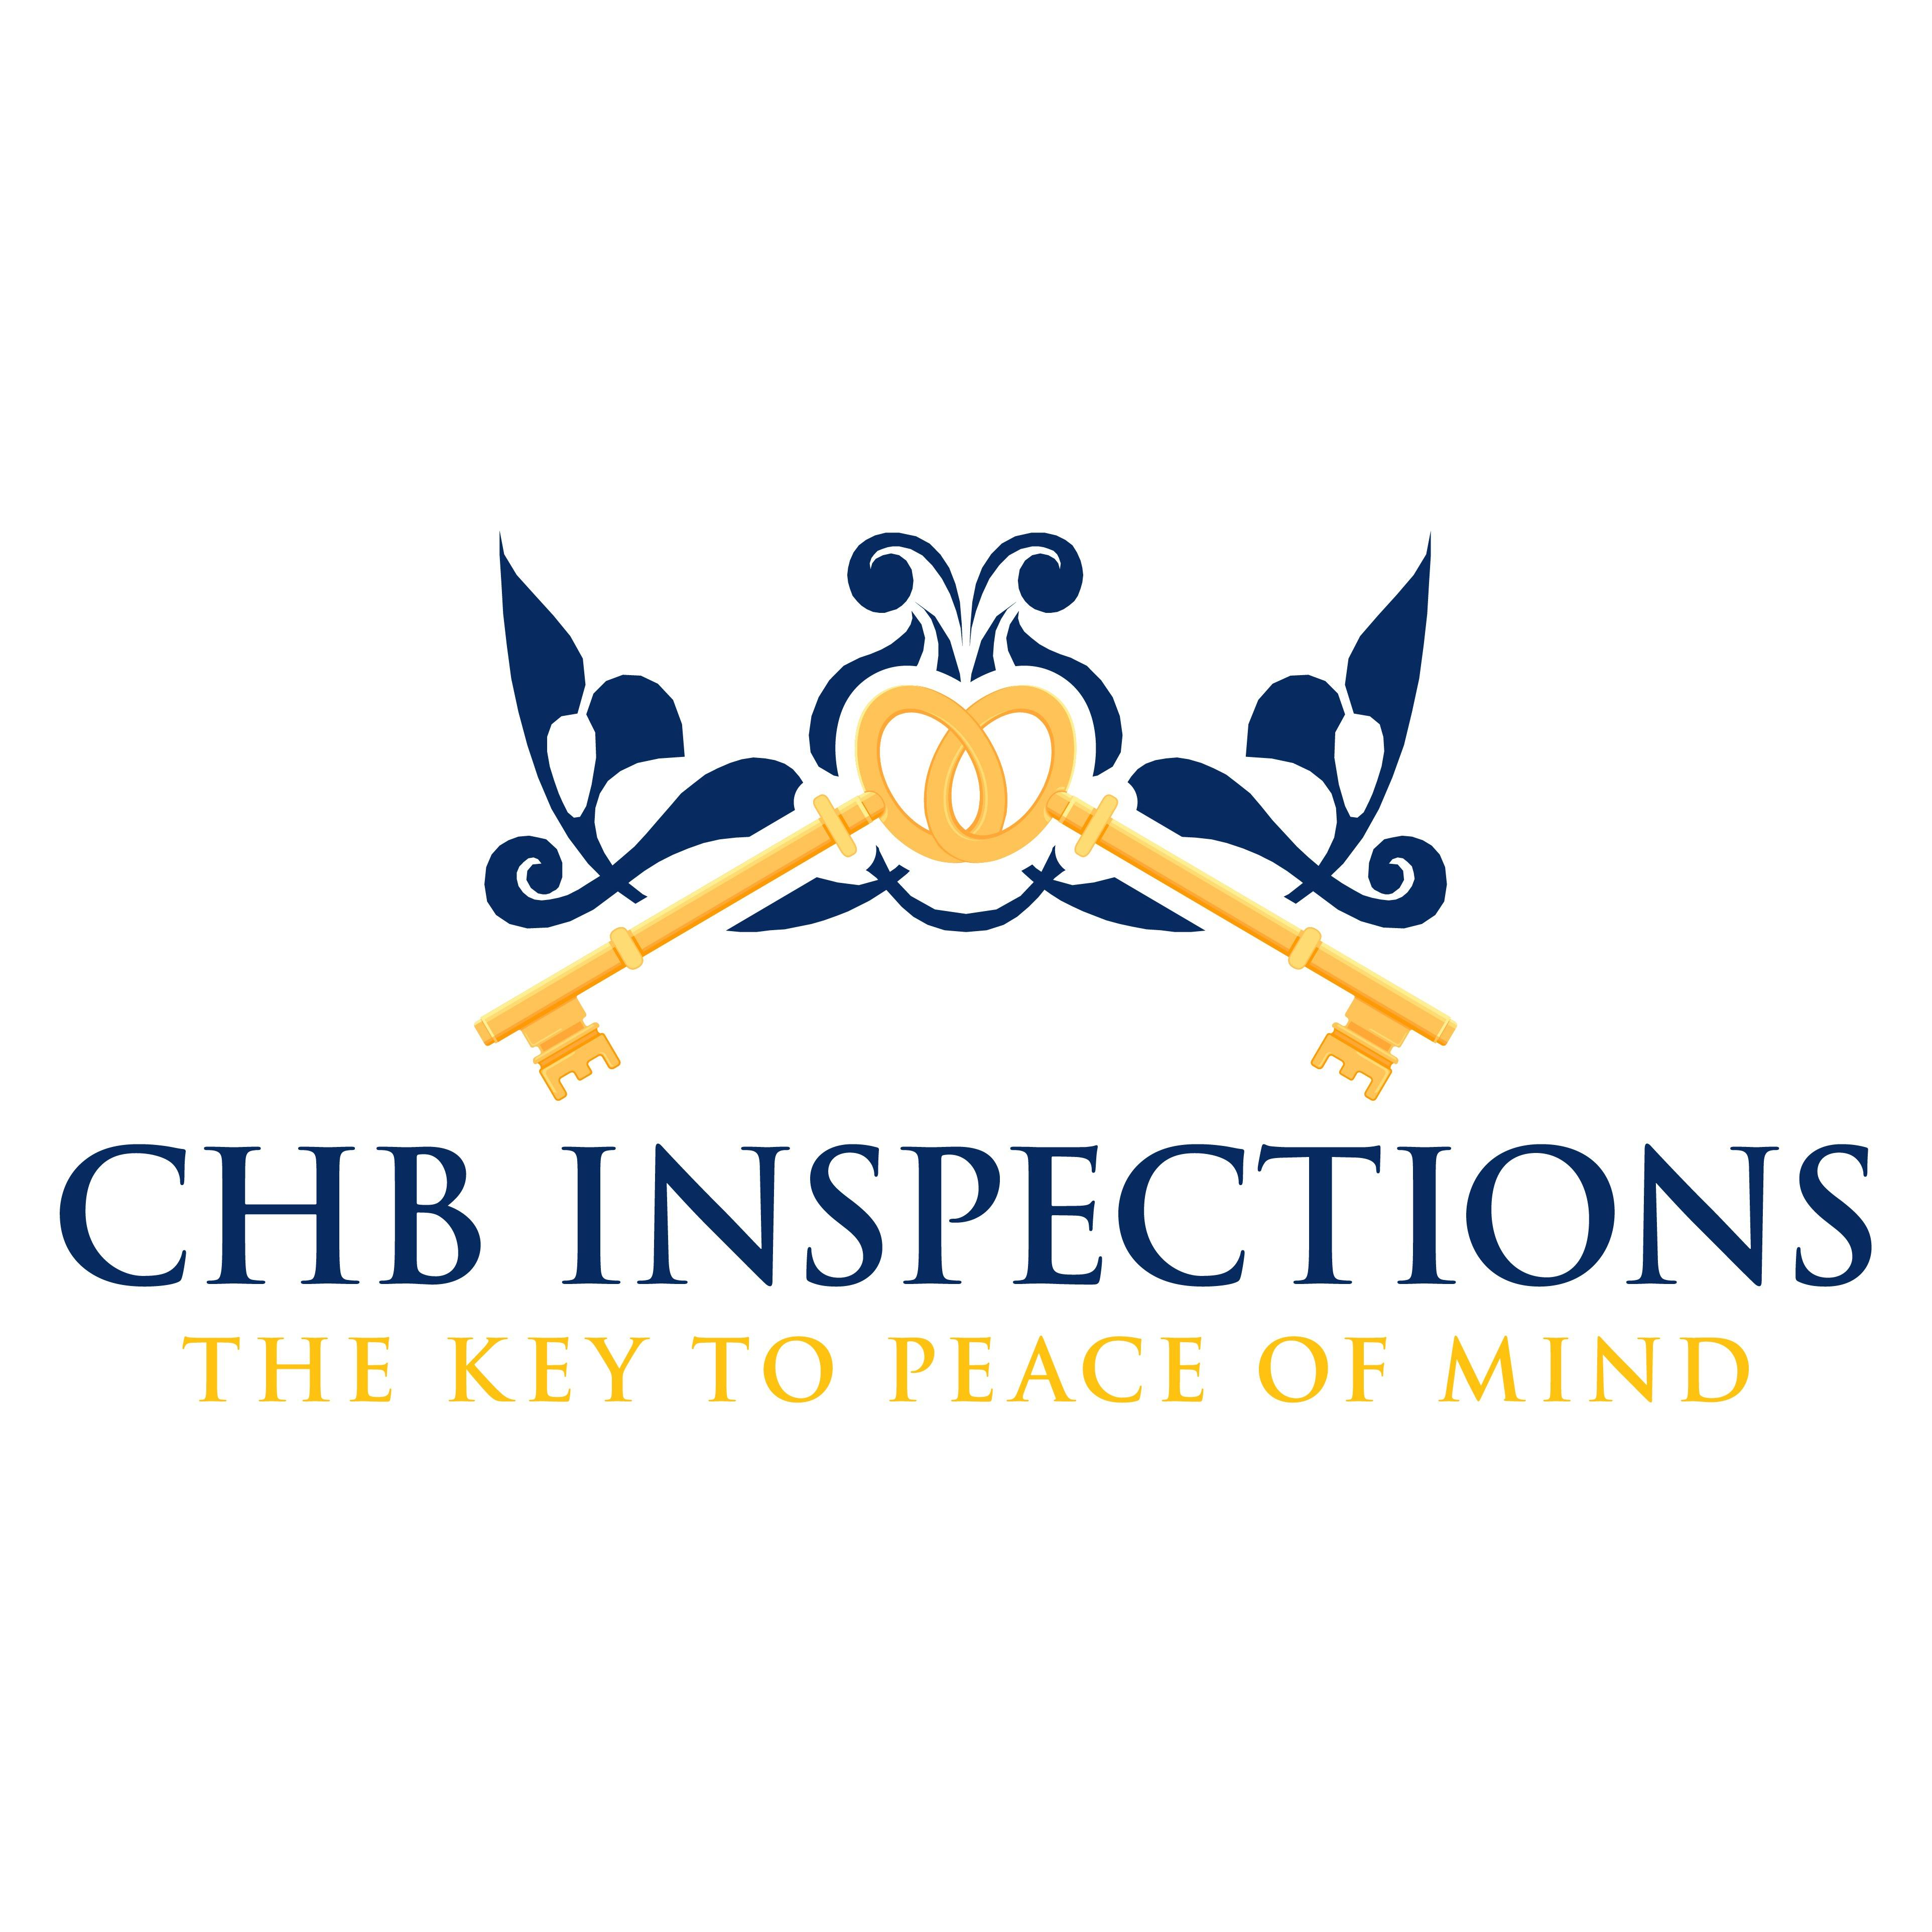 Chb Inspections